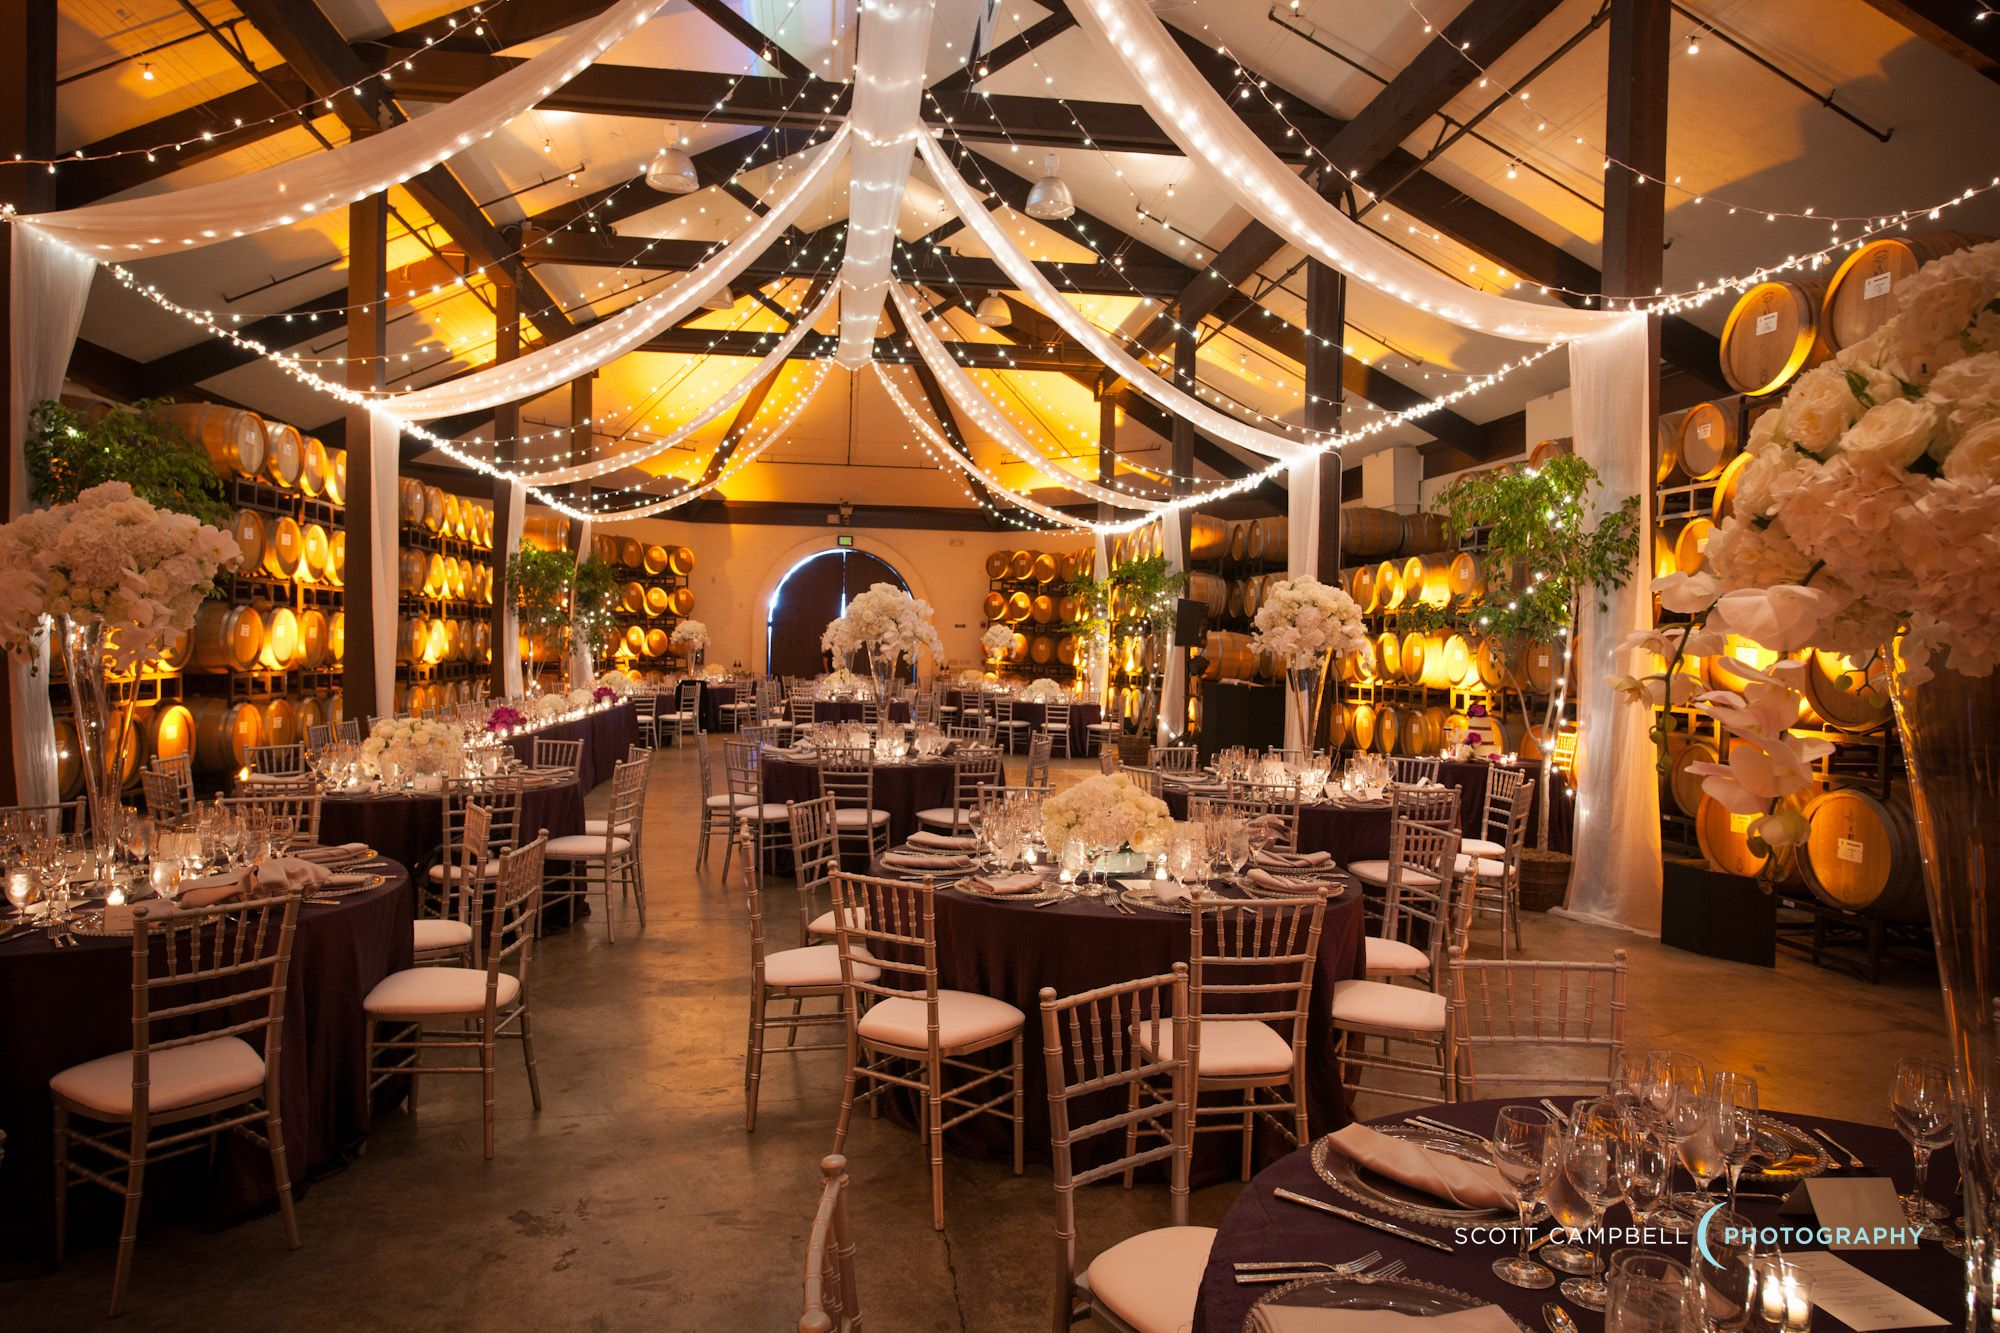 Wedding hall decoration images  Complete decor by Chic Events  Chateau Julien Weddings u Events